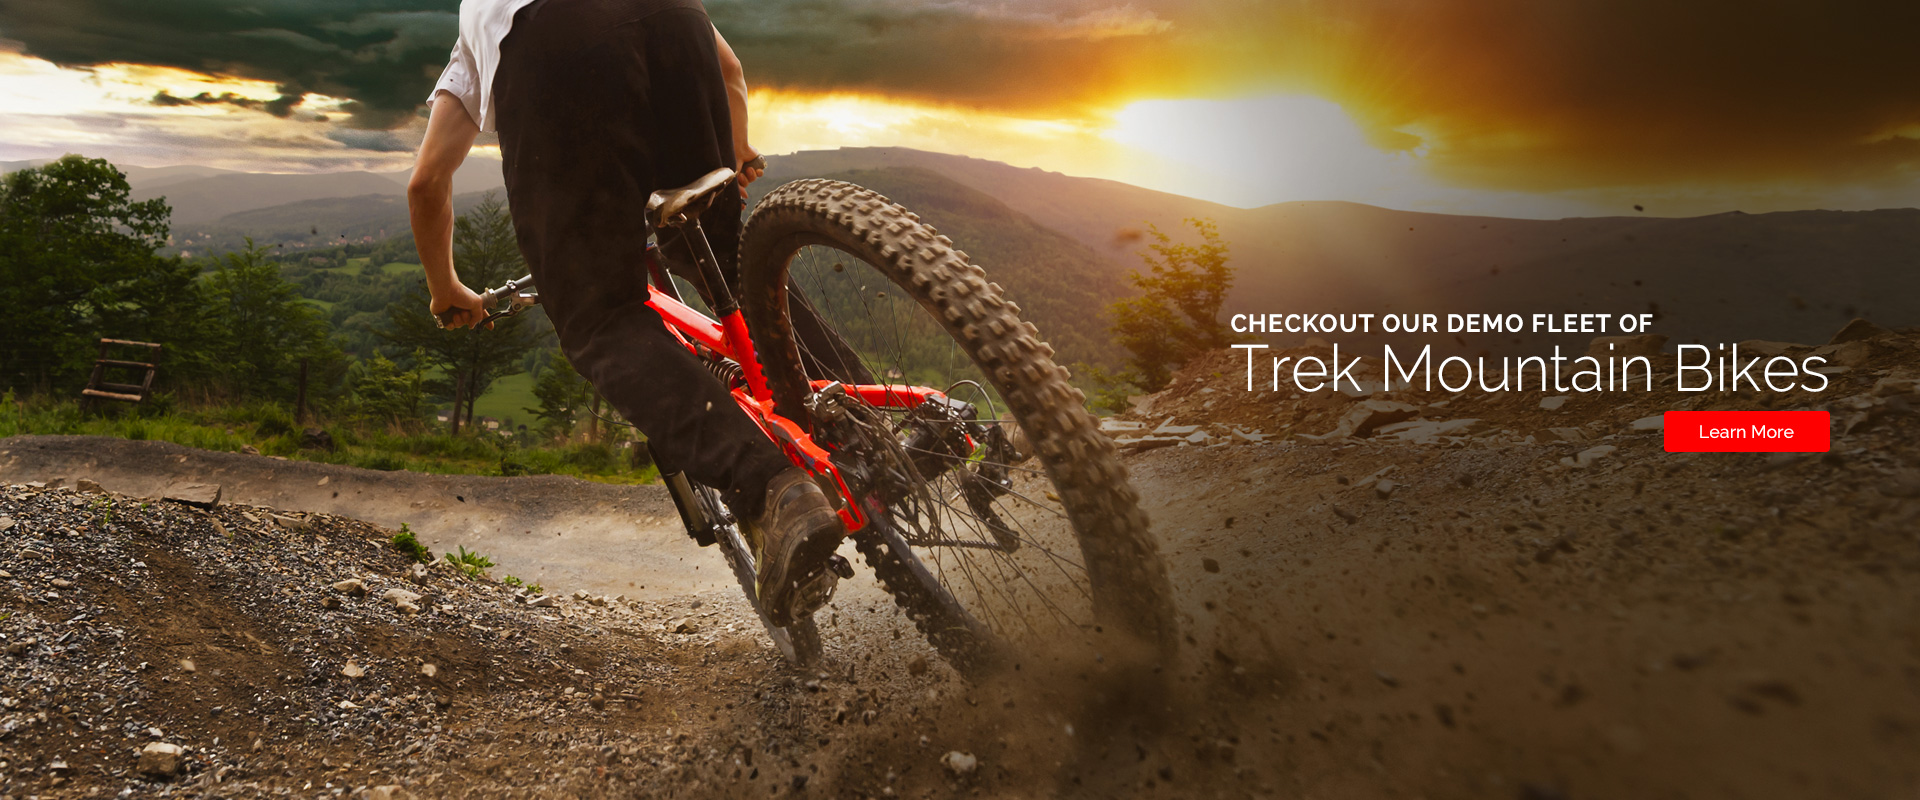 Checkout our demo fleet of Trek mountain bikes